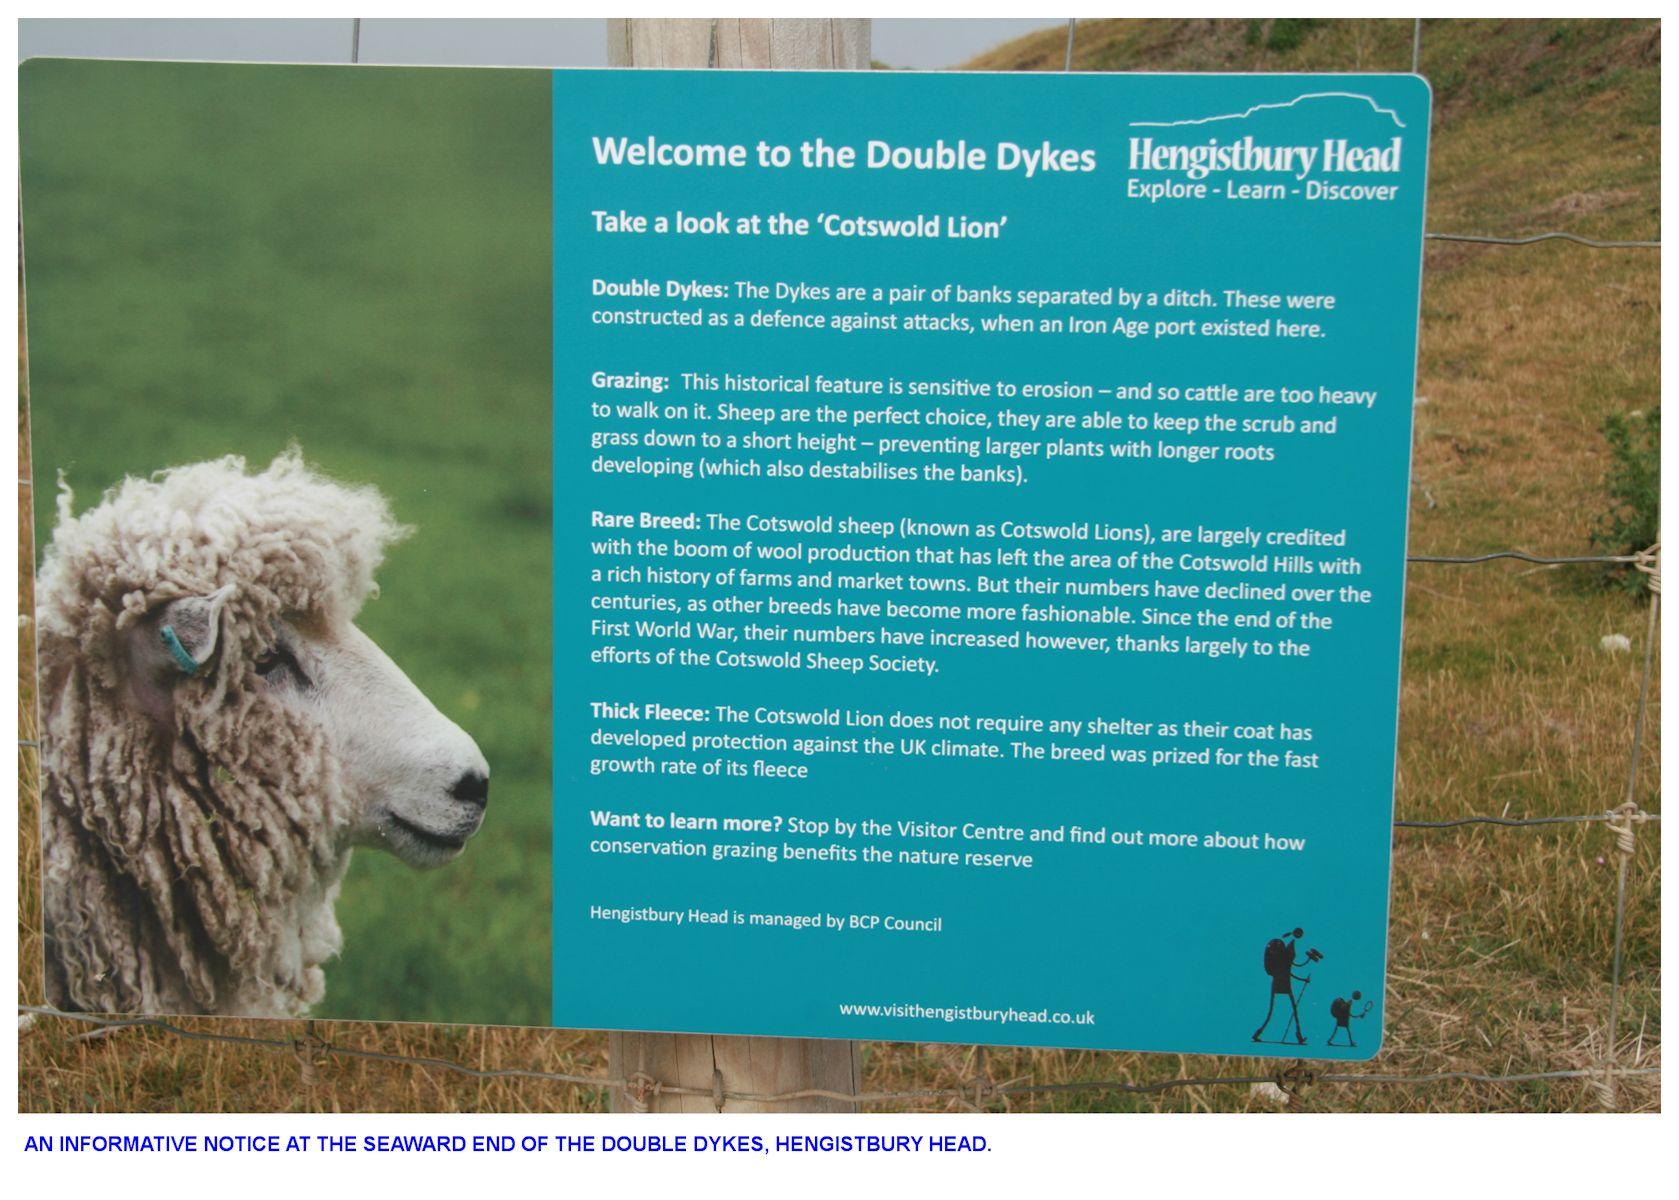 An information board at the Double Dykes about the grazing sheep, as seen in the year 2020